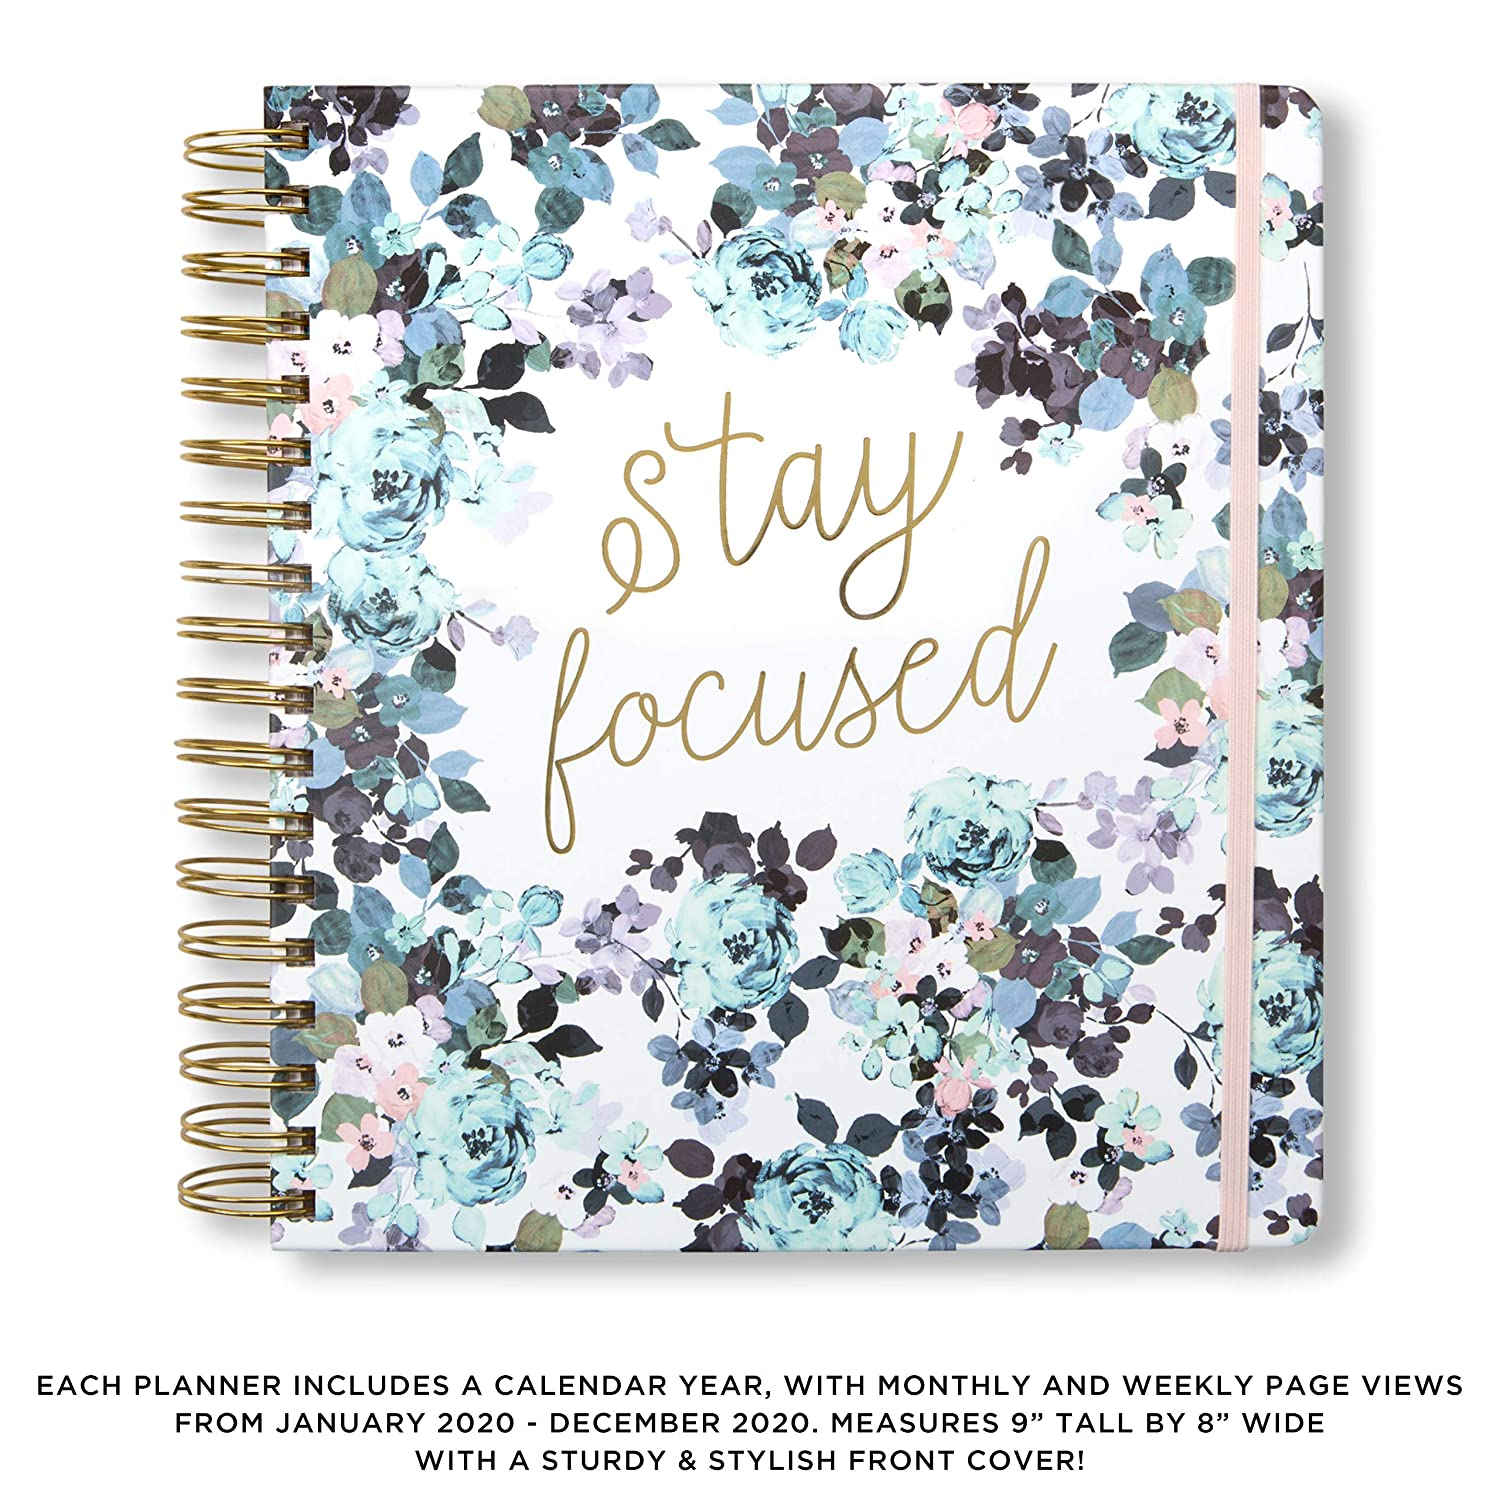 2020 Stay Focused, 12 Month Daily Planners/Calendars: Tri-Coastal Design Planners with Monthly, Weekly and Daily Views - Personal Planner Notebook for ...